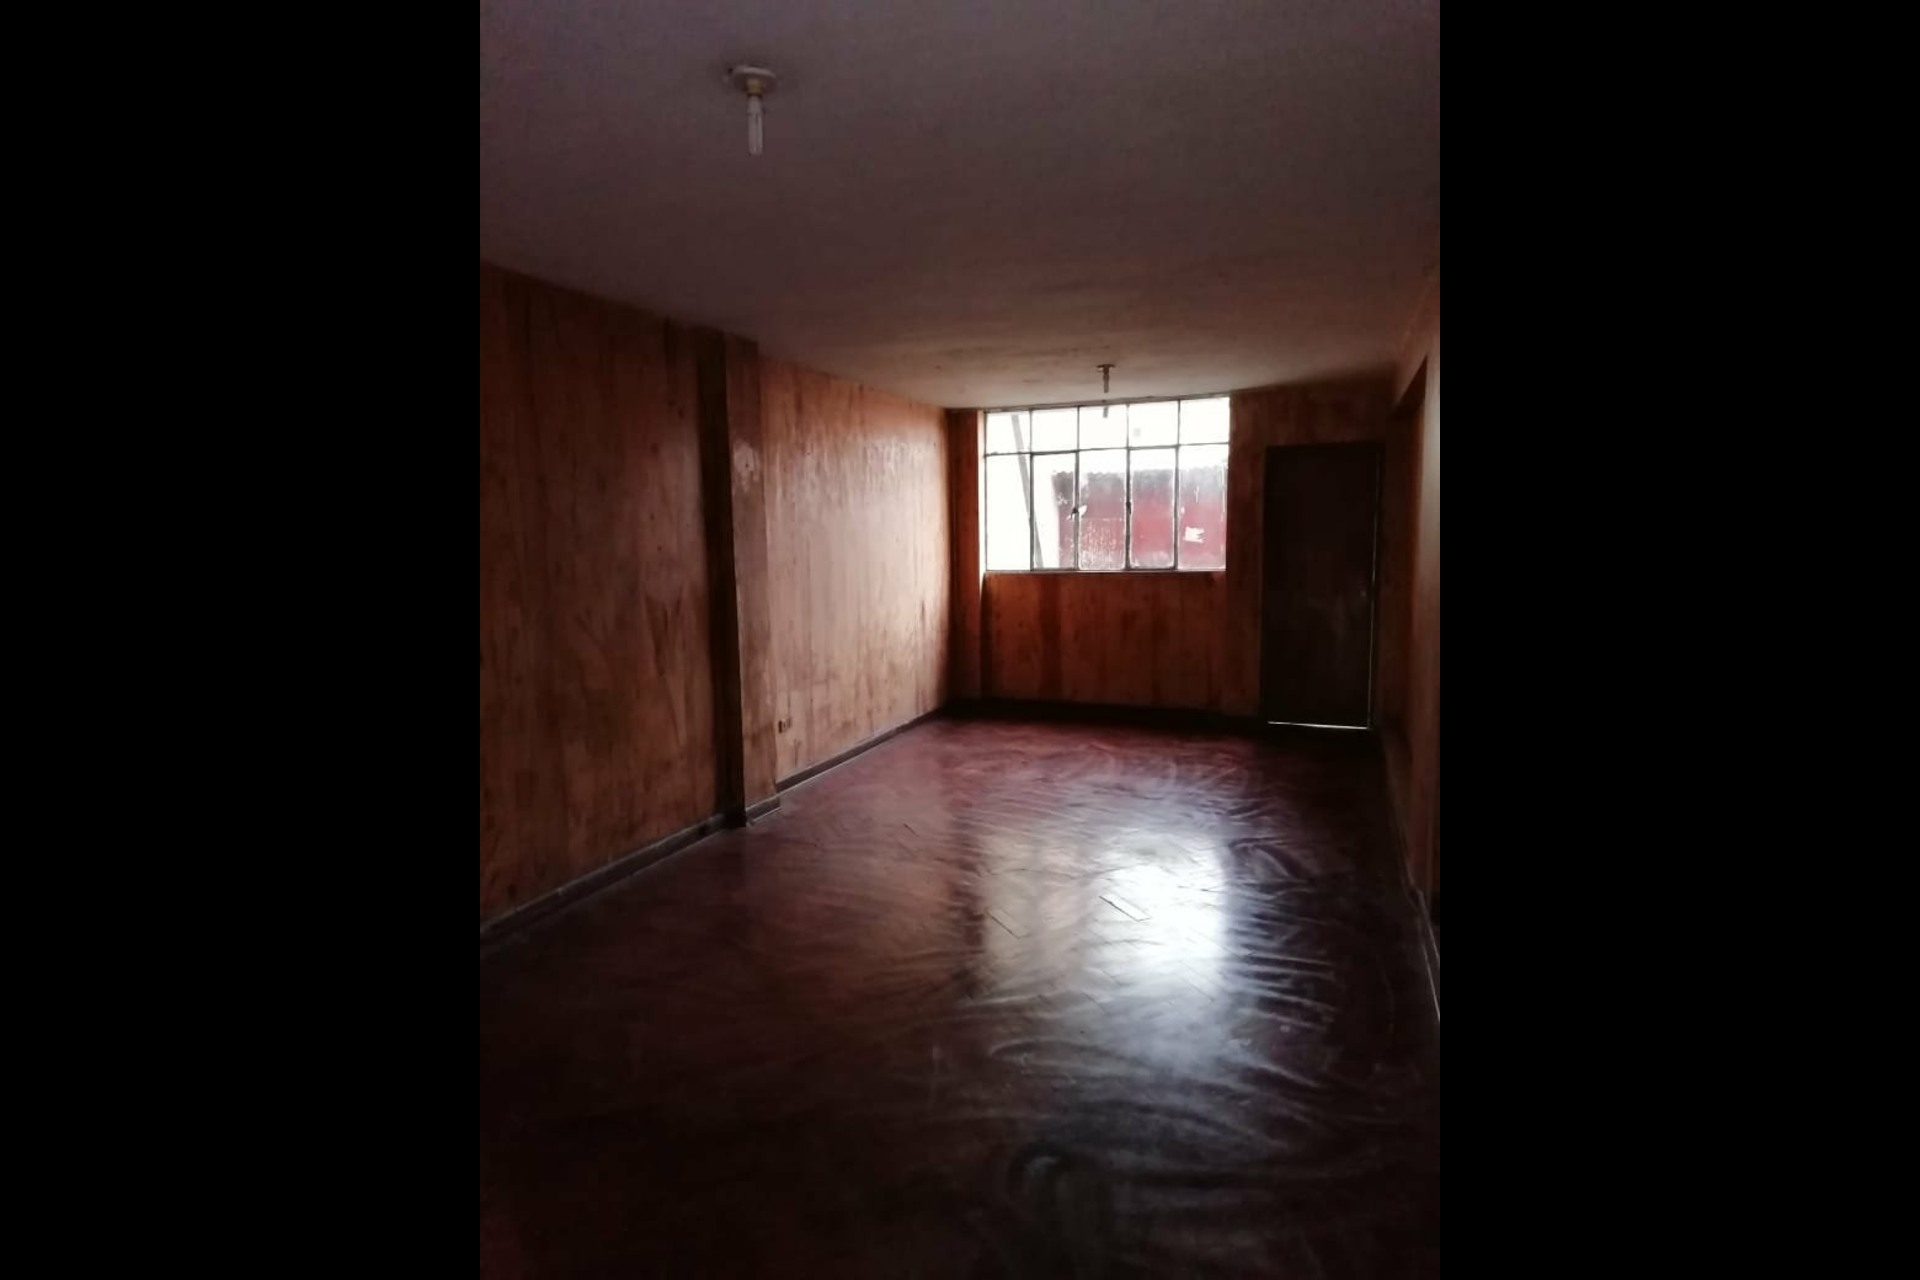 image 5 - House For sale Autres pays / Other countries - 11 rooms